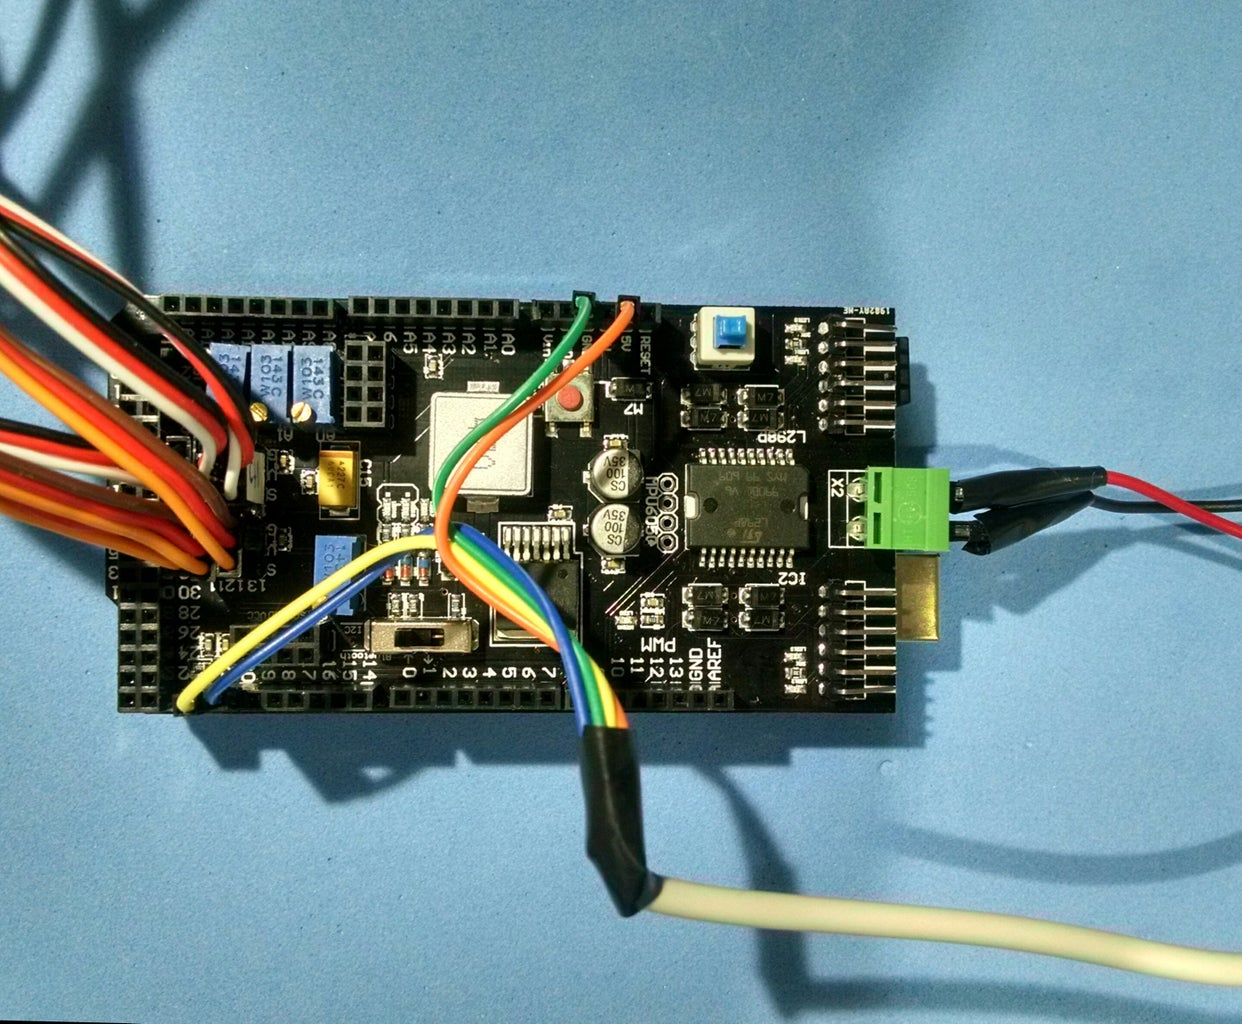 Wiring Up the Circuits